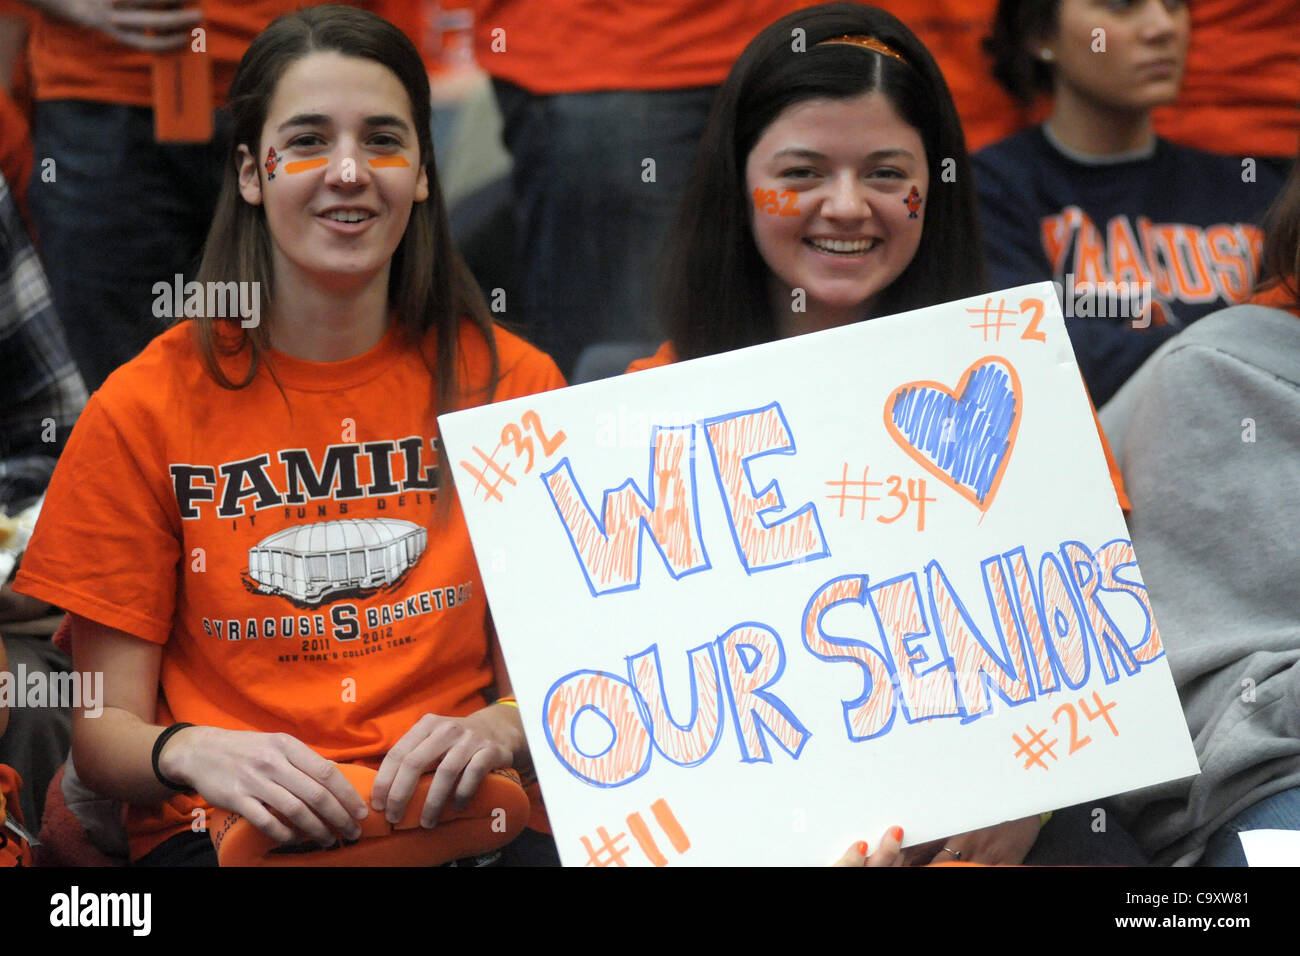 March 3, 2012 - Syracuse, New York, U.S - Syracuse students show off their support of the seniors before the Orange - Stock Image